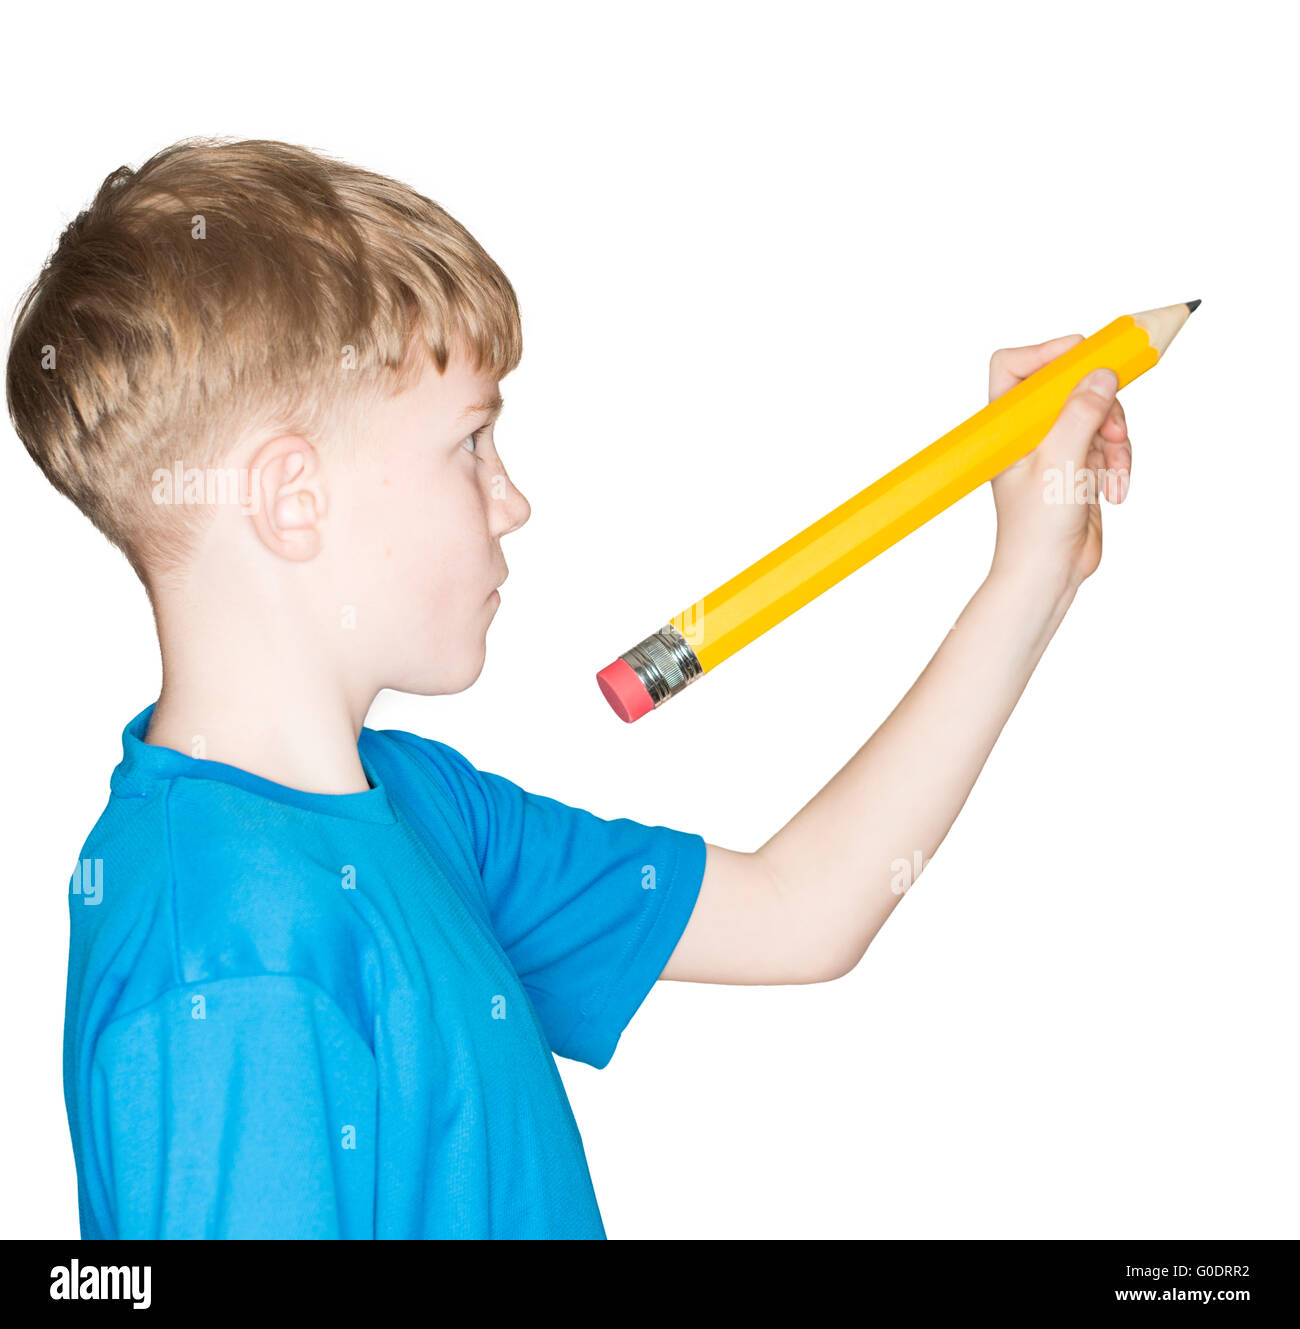 child with a pencil in hand - Stock Image